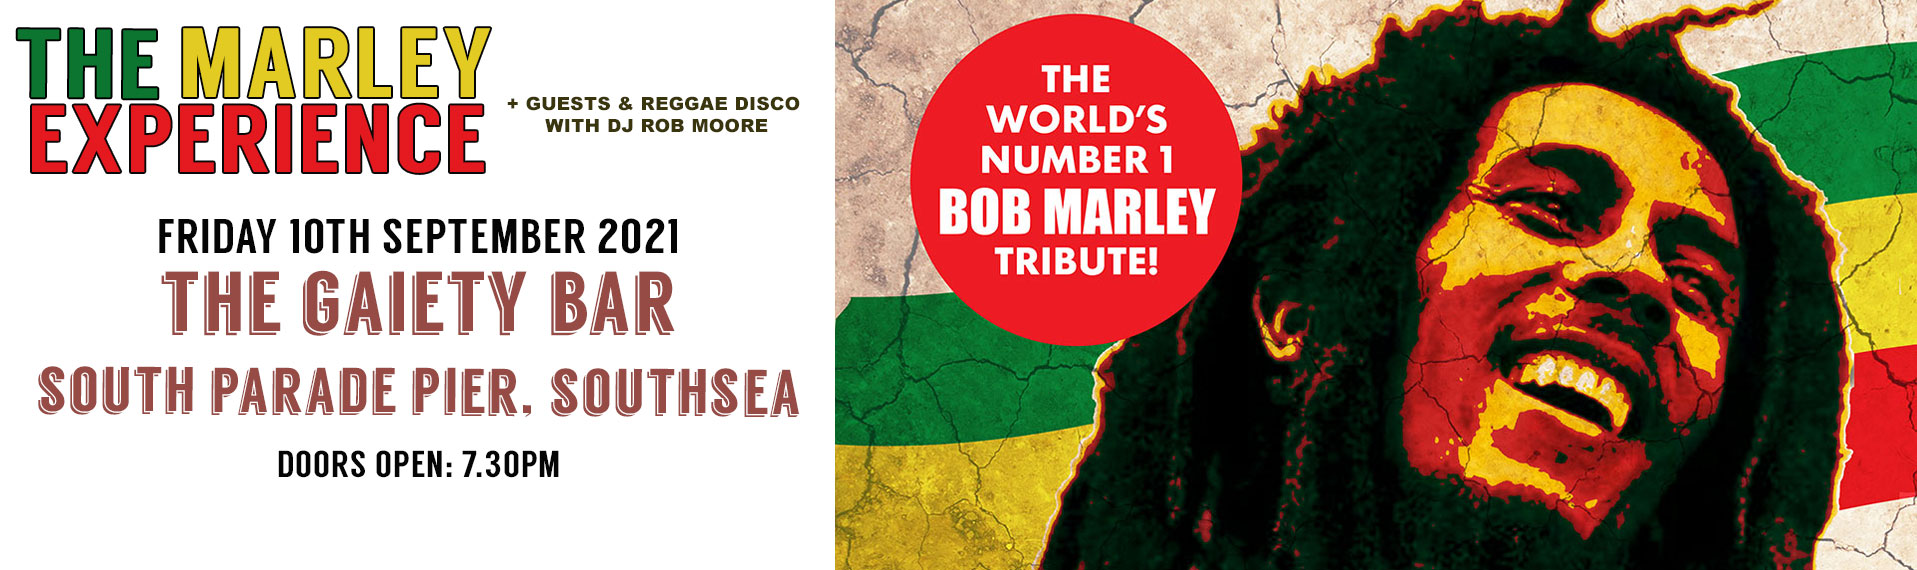 the-marley-experience-banner